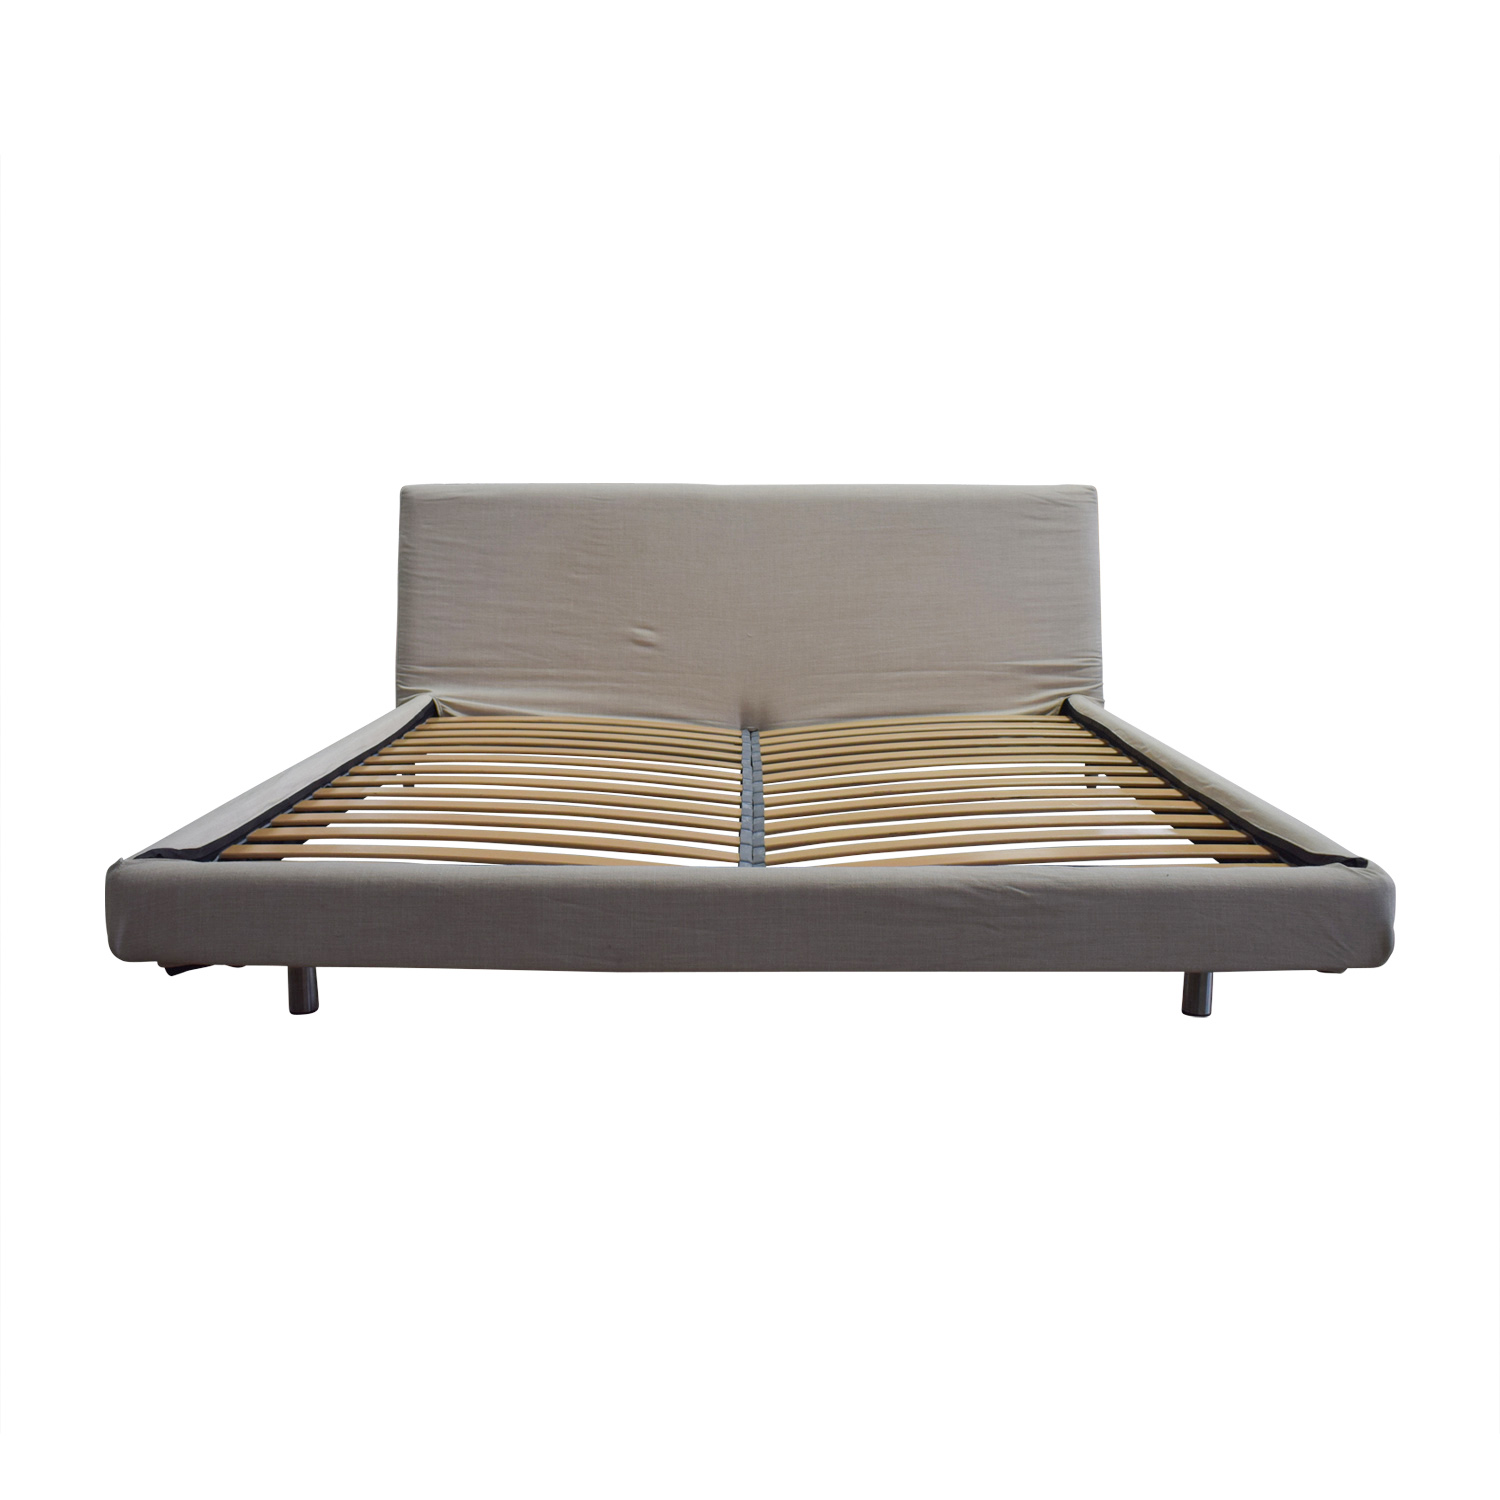 Design Within Reach Design Within Reach Reva Oatmeal Fabric Platform King Bed Frame nyc